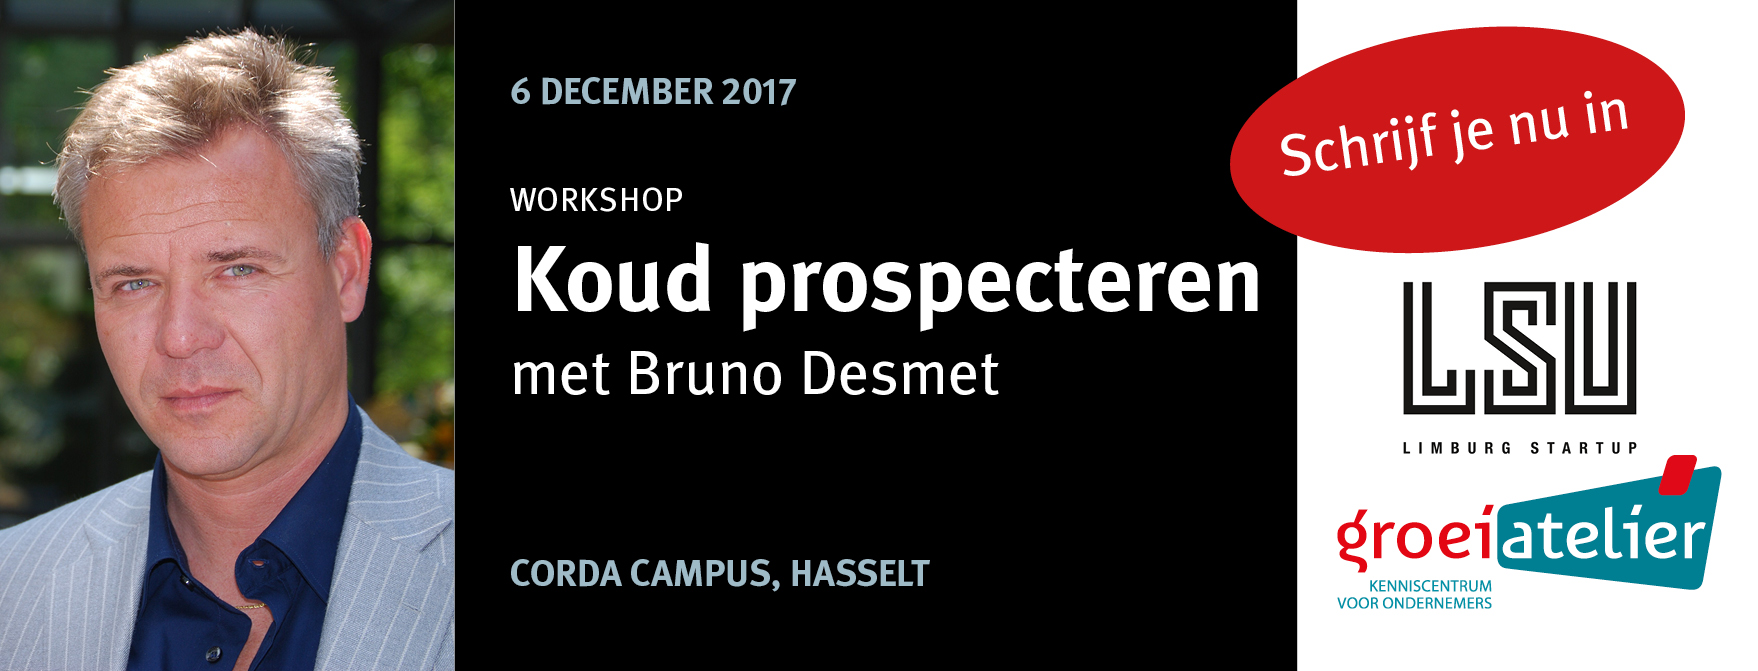 Workshop 'koud prospecteren'